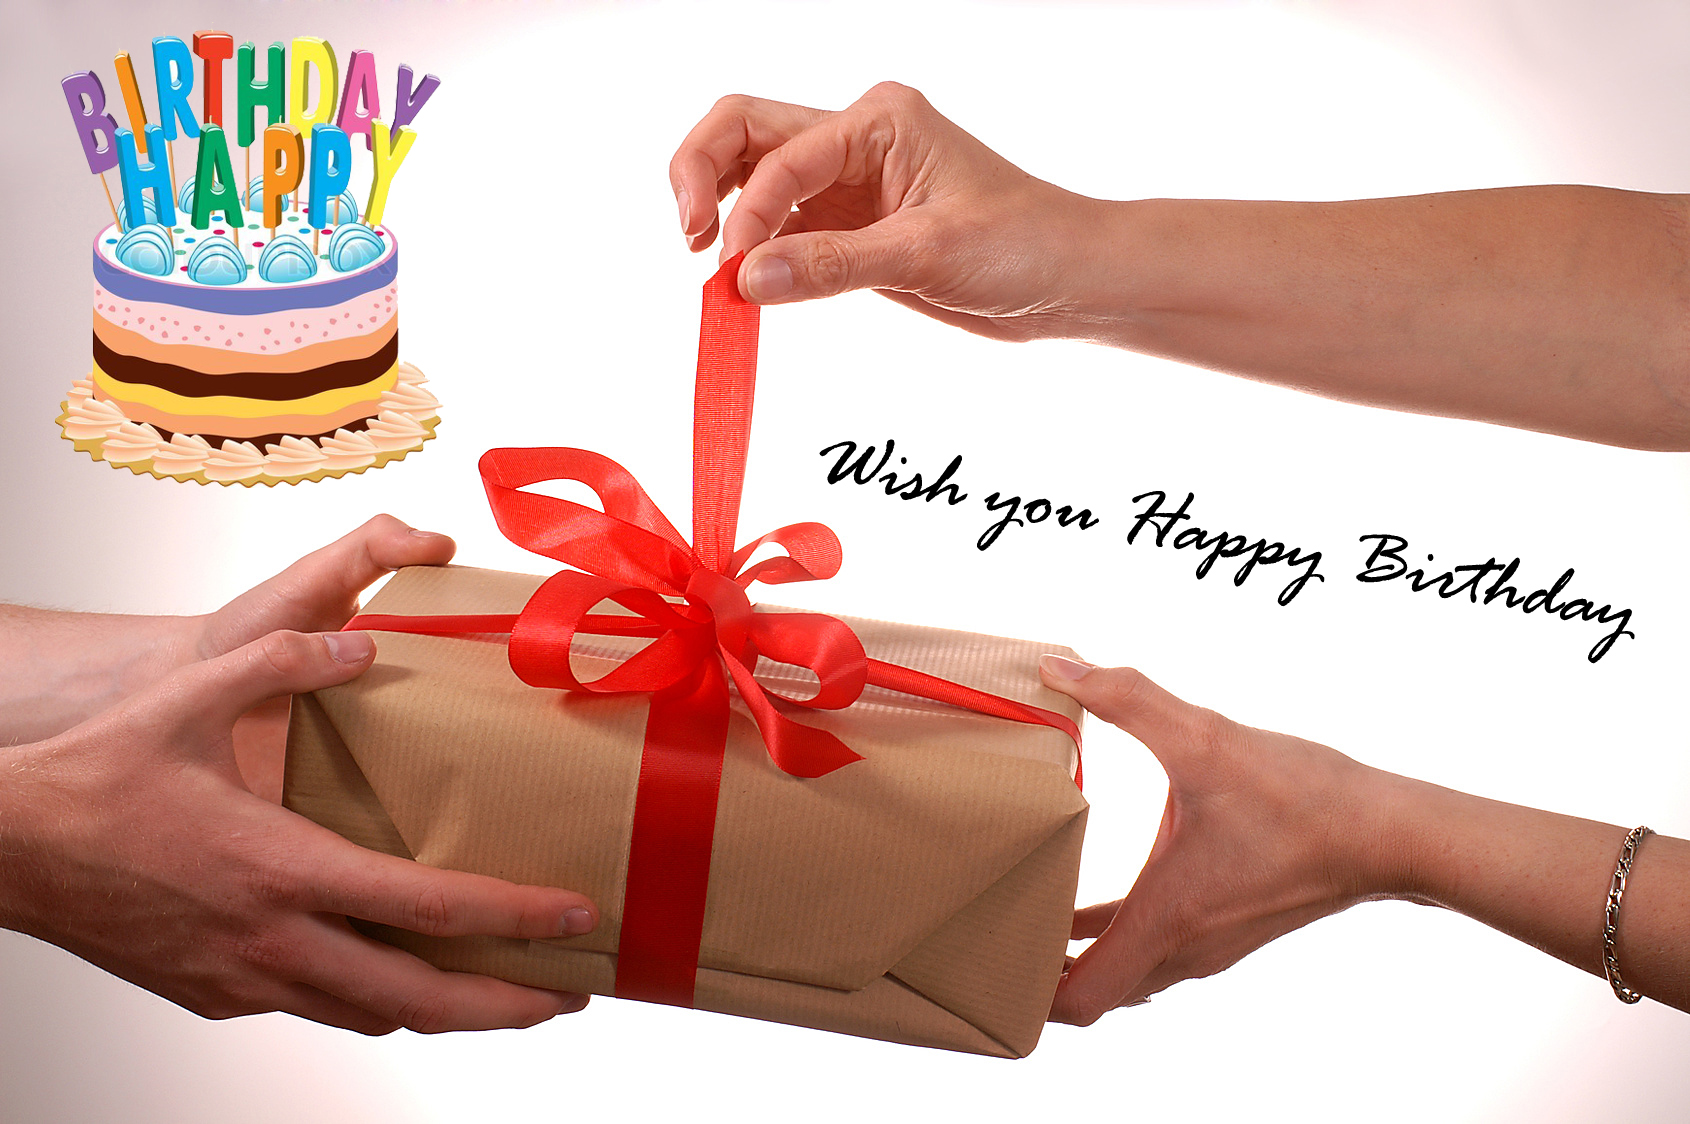 Genuine and Thoughtful Birthday Wishes That Can Bring Happiness to Your Wife 3